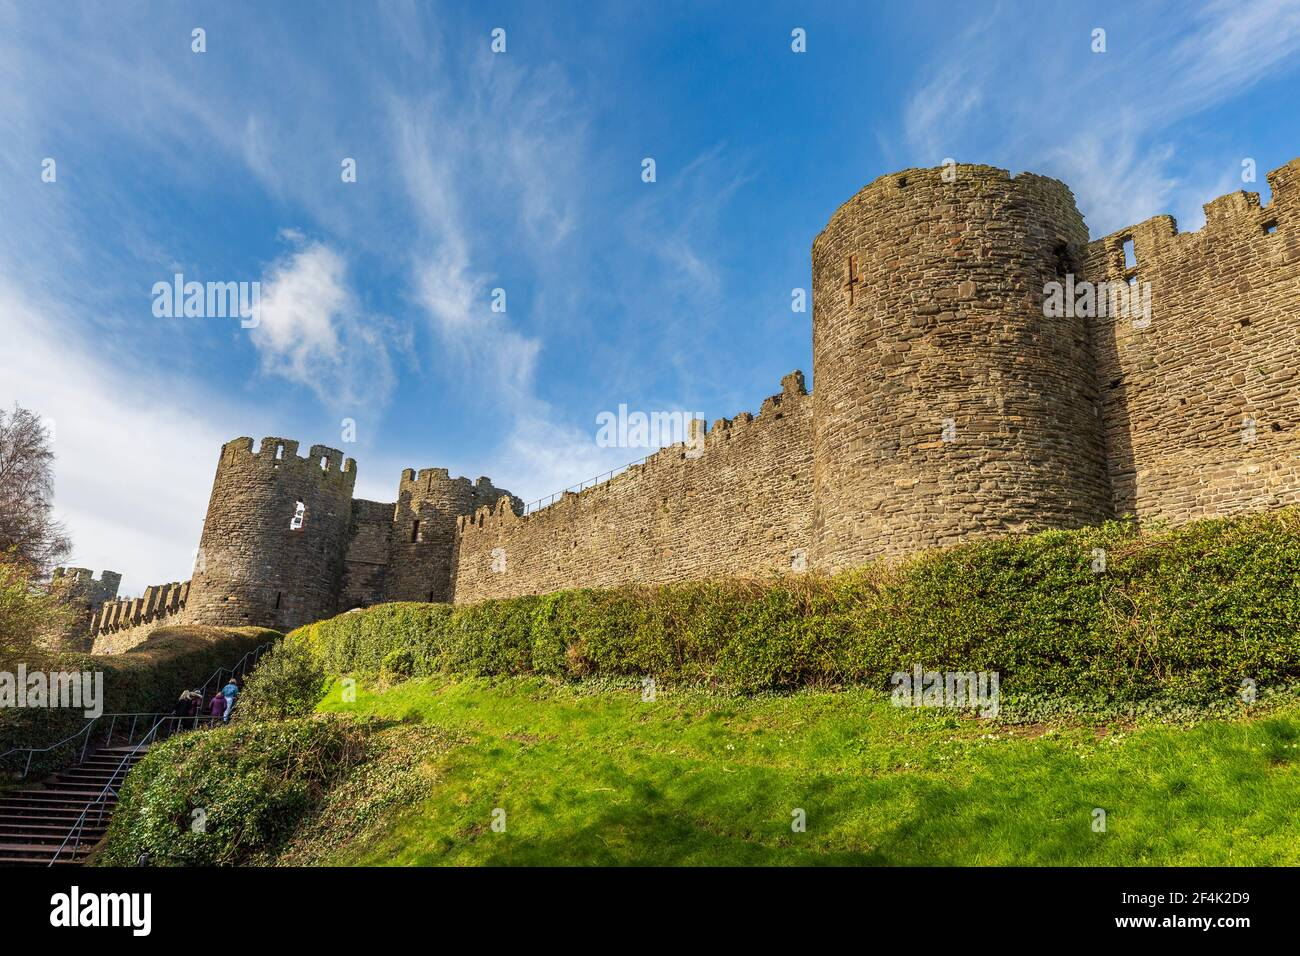 The castle walls surrounding the town of Conwy, Wales Stock Photo